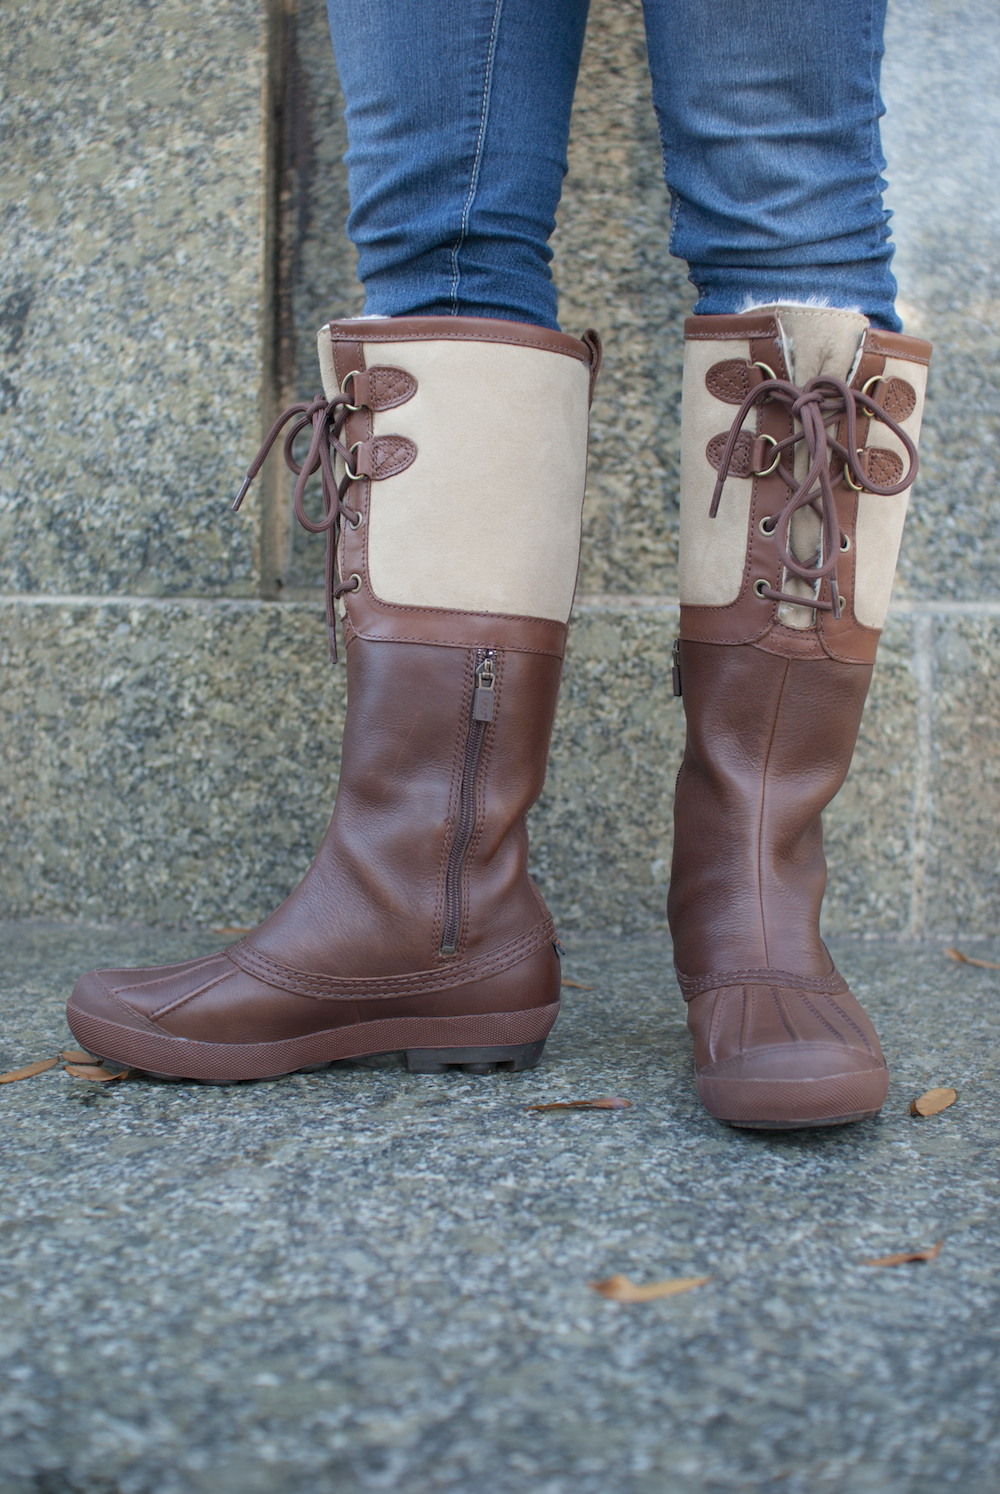 3b499b0ccf0 UGG Australia's waterproof leather duck boot for women - the ...